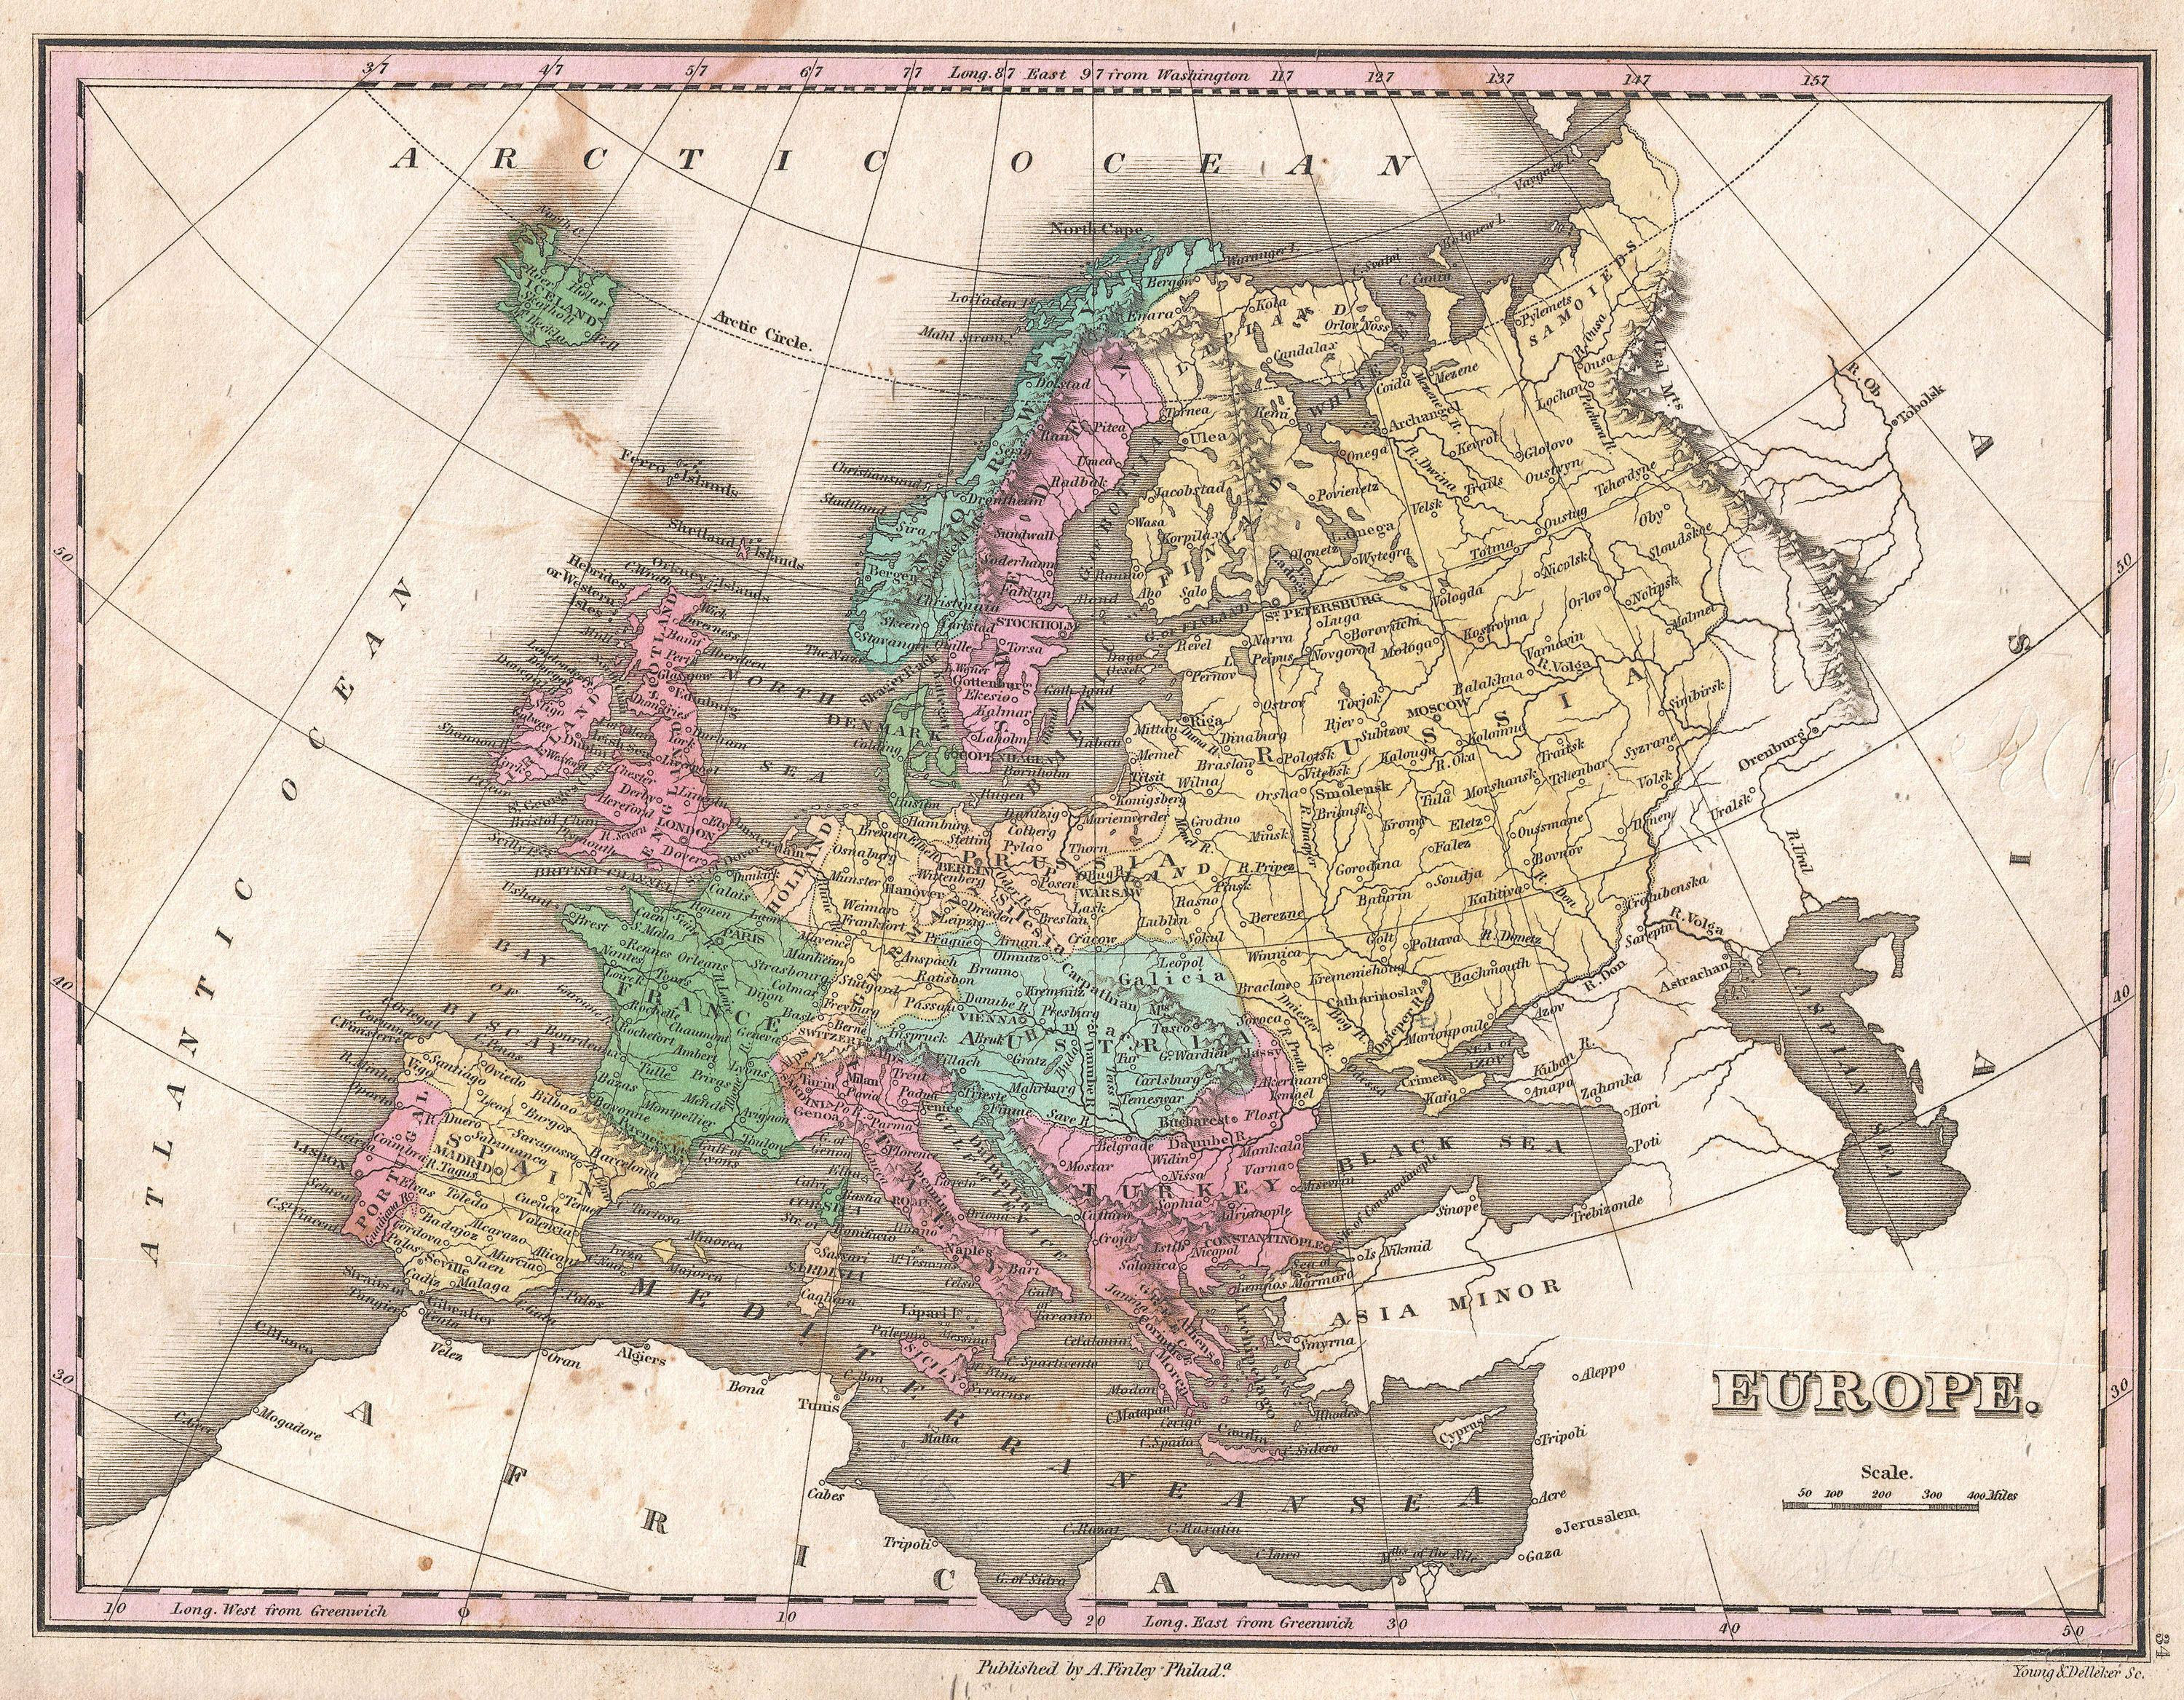 File:1827 Finley Map of Europe - Geographicus - Europe-finely-1827.